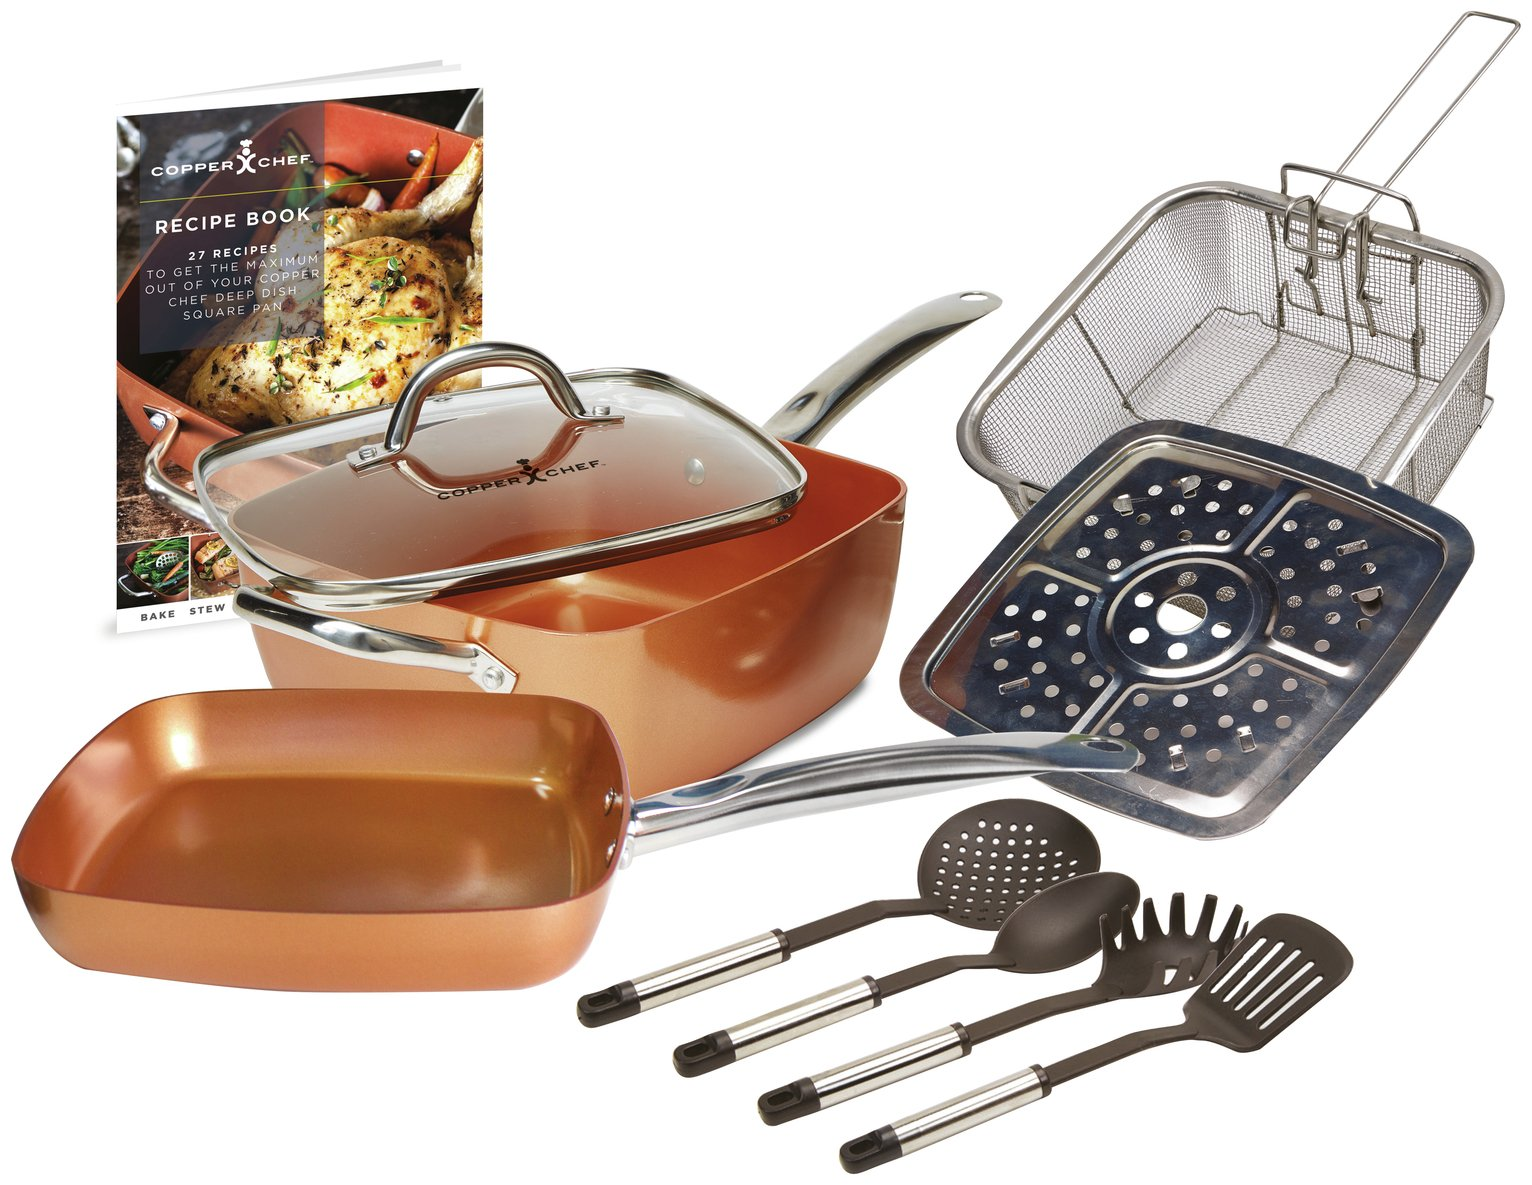 Image of Copper Chef 10 Piece Non-Stick 24cm Deluxe Pan Set